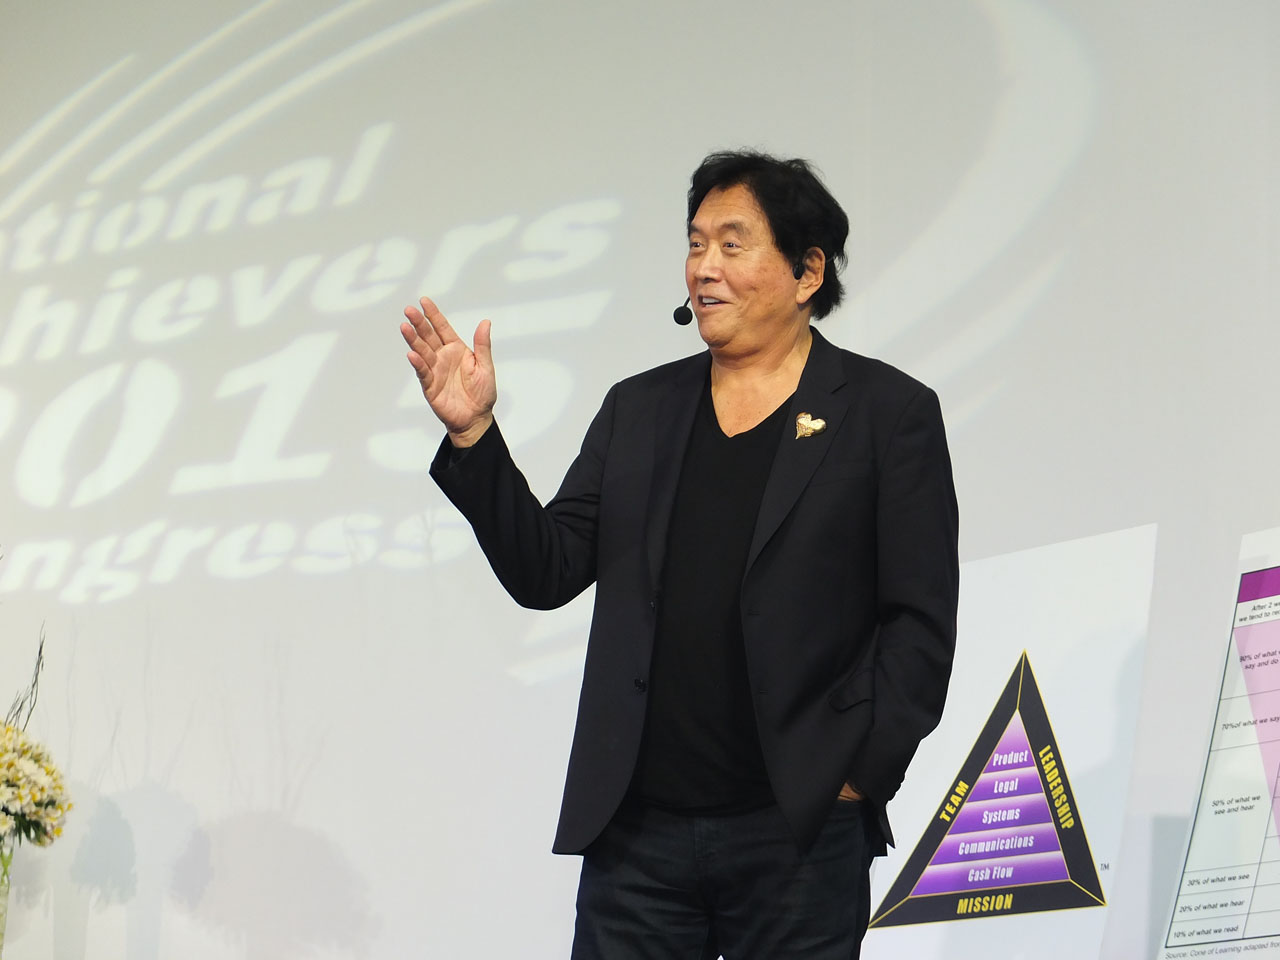 Robert Kiyosaki Traditional School Is Useless